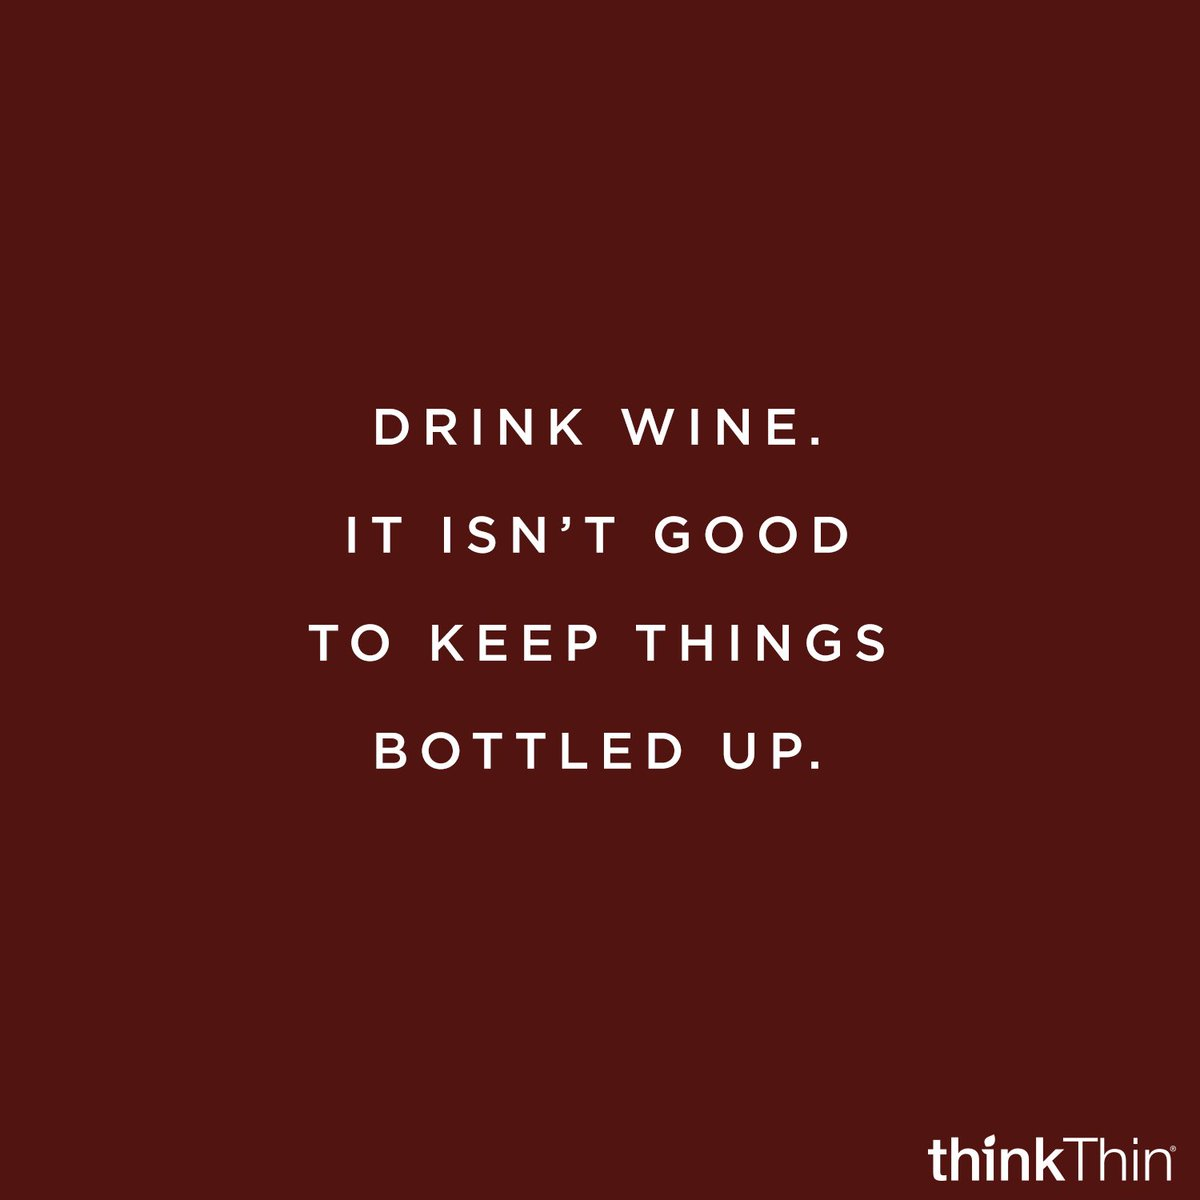 Just let it out #WineWednesday https://t.co/tBOEPkedJY